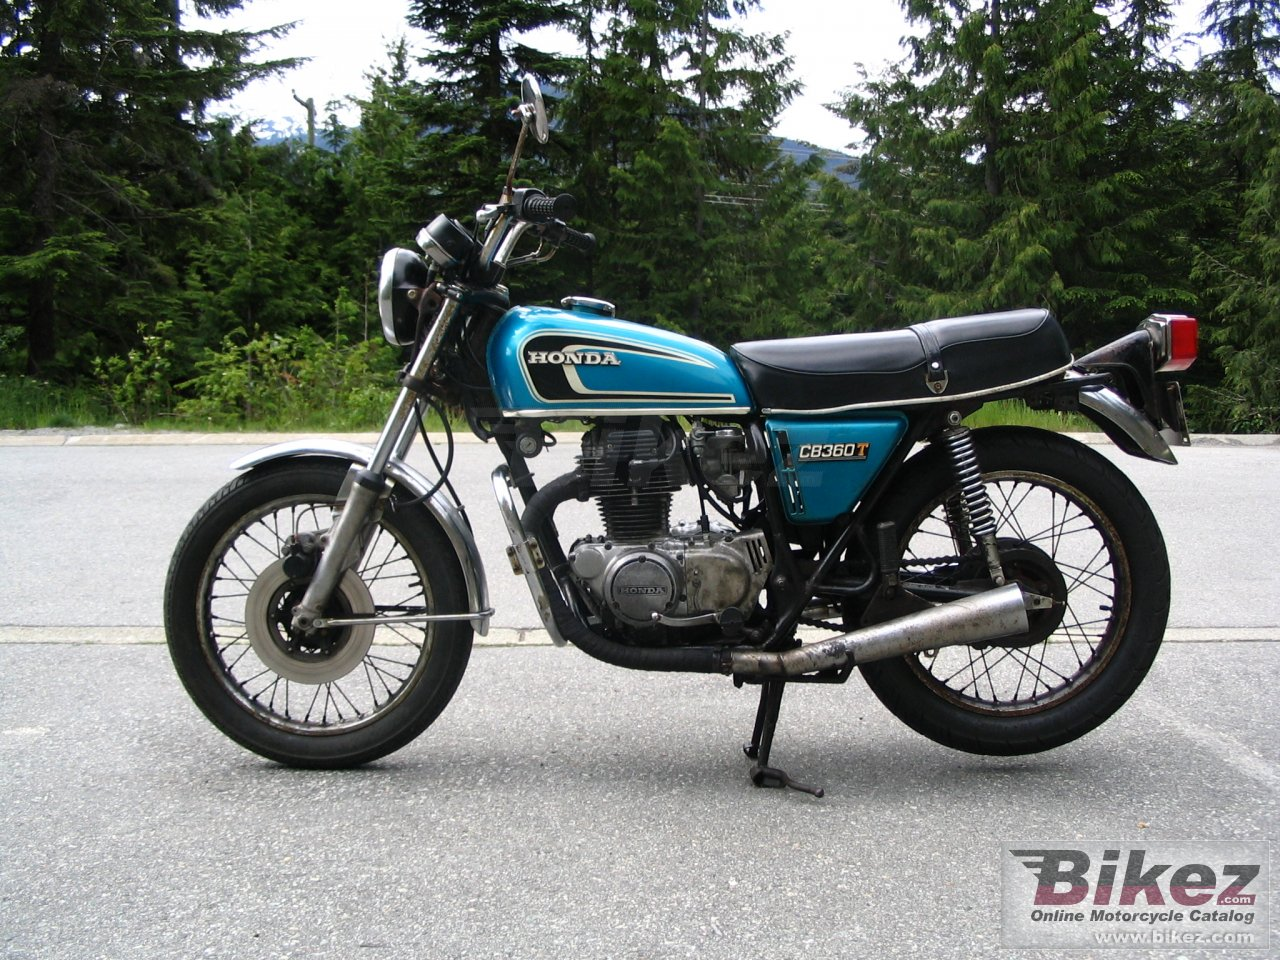 Big  cb 360 g picture and wallpaper from Bikez.com